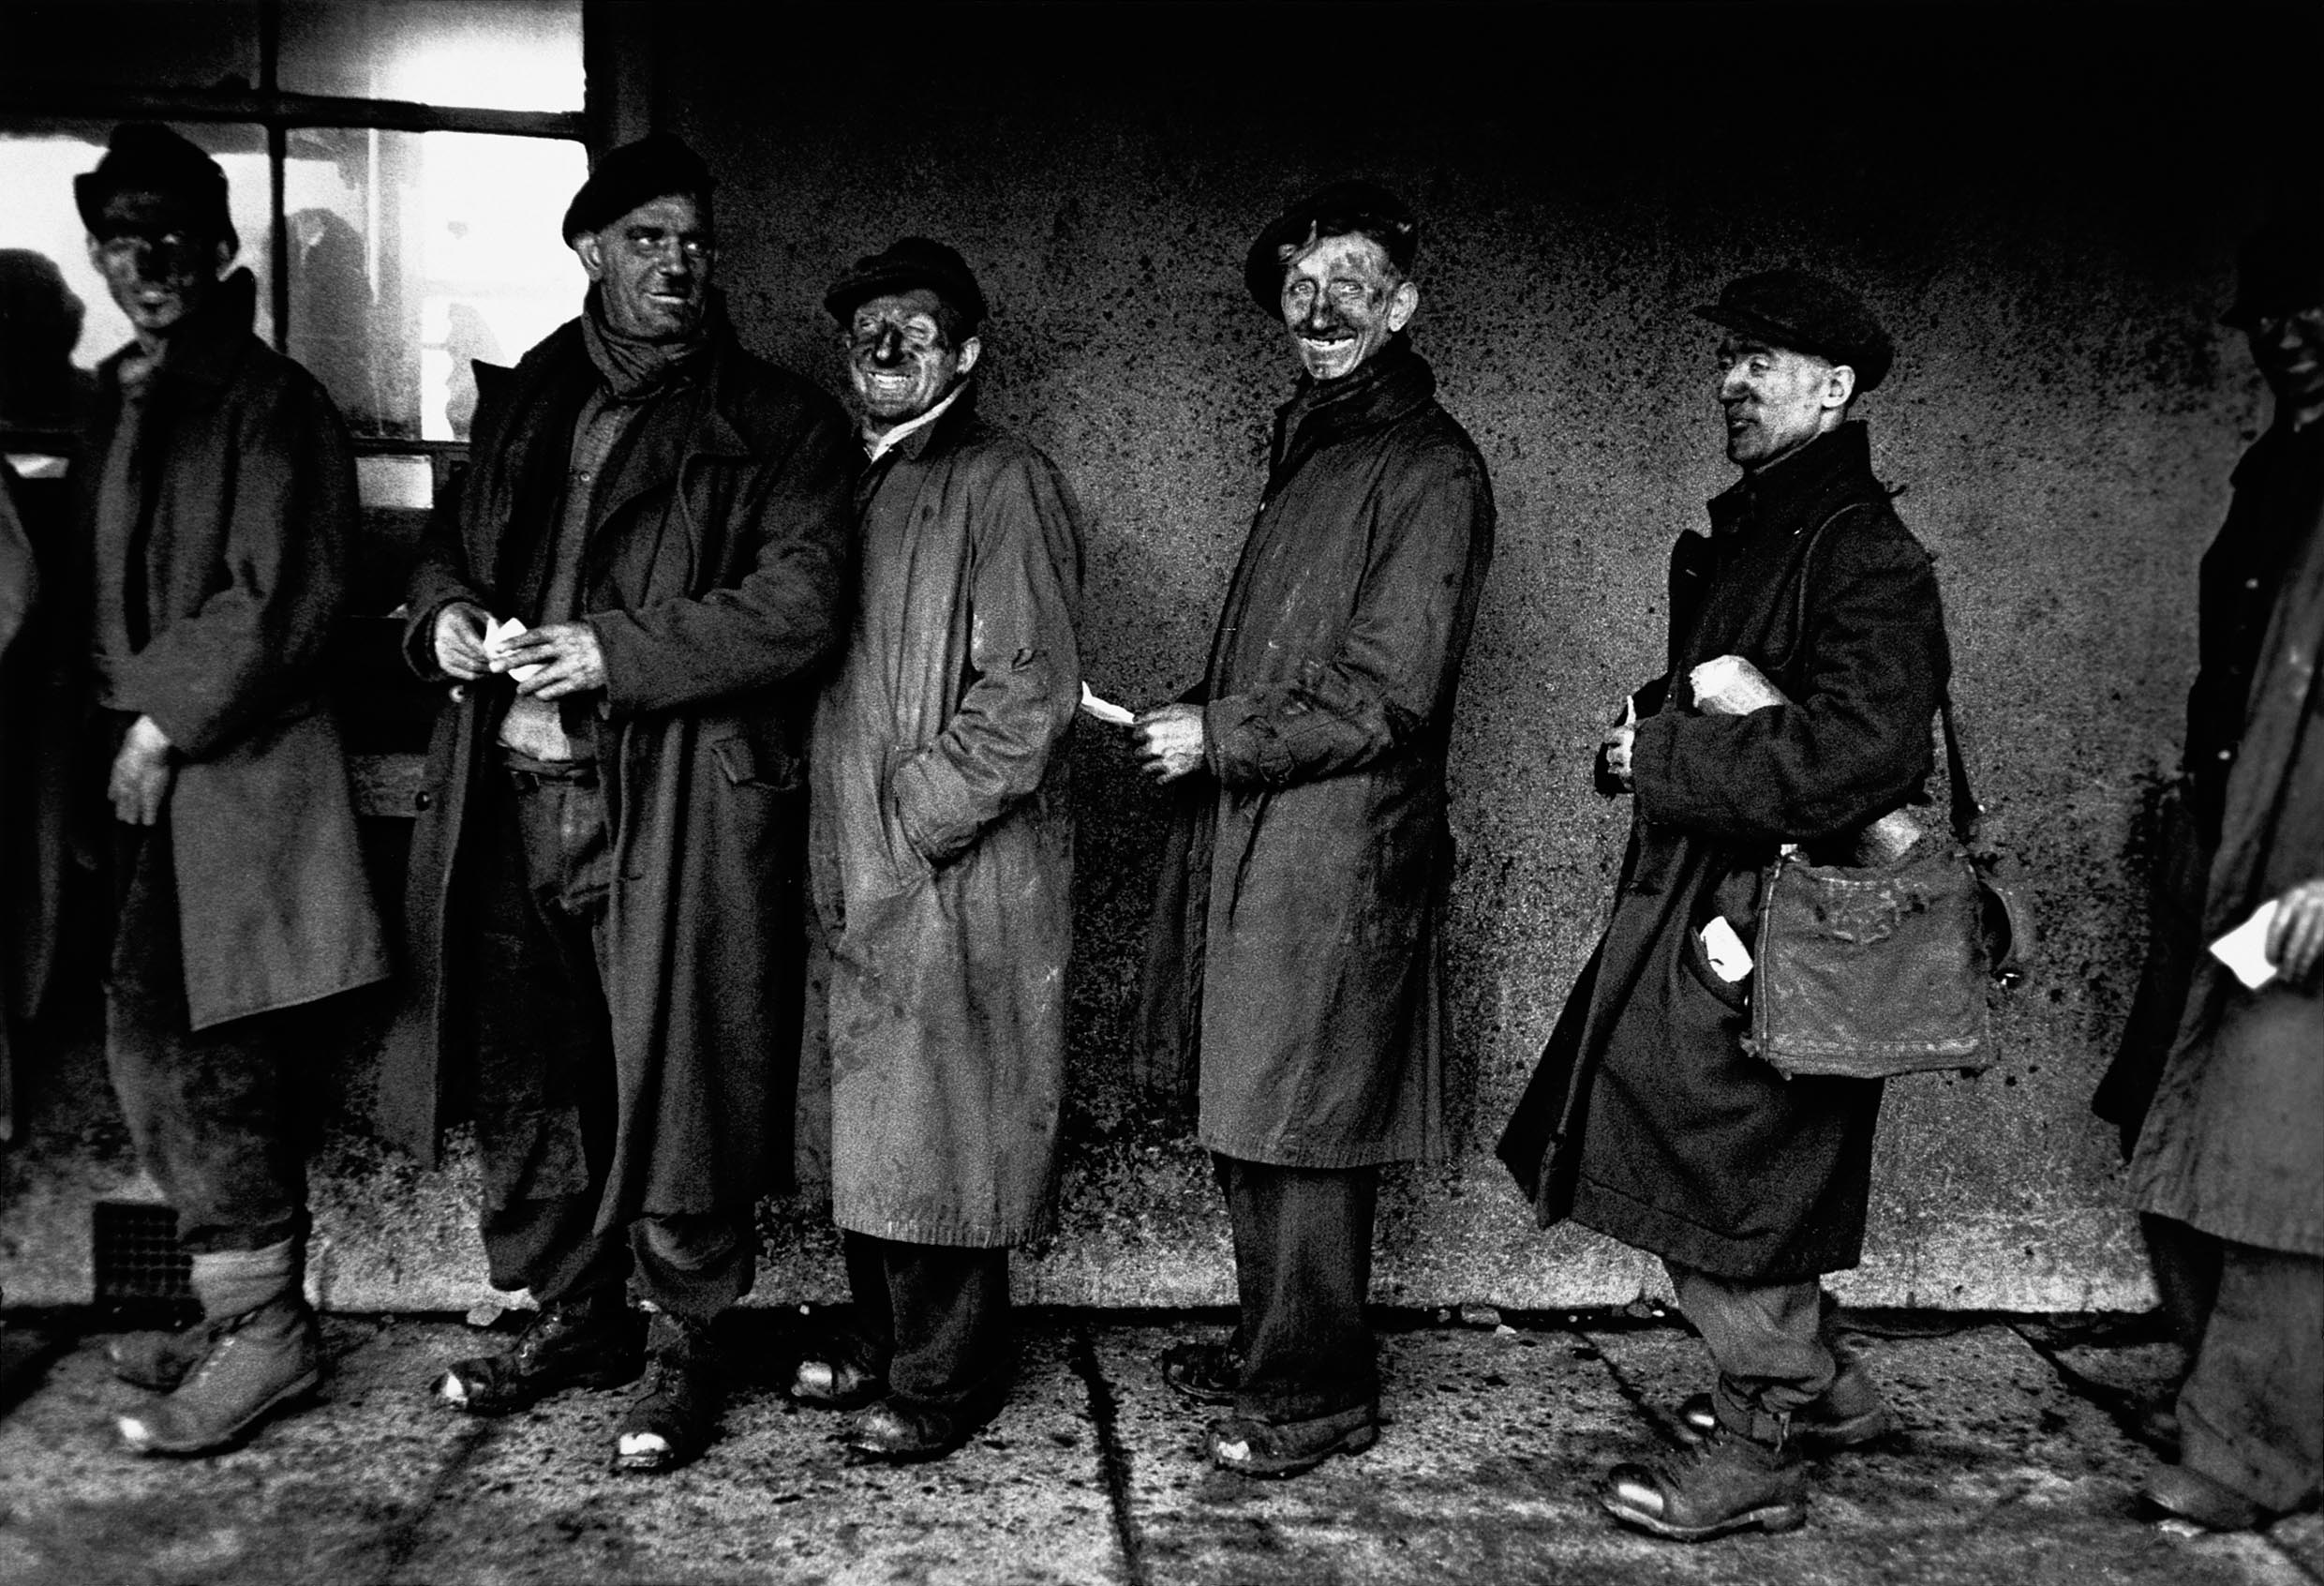 Robert Frank, Welsh Miners (1953), from the book London / Wales (2007) © Robert Frank